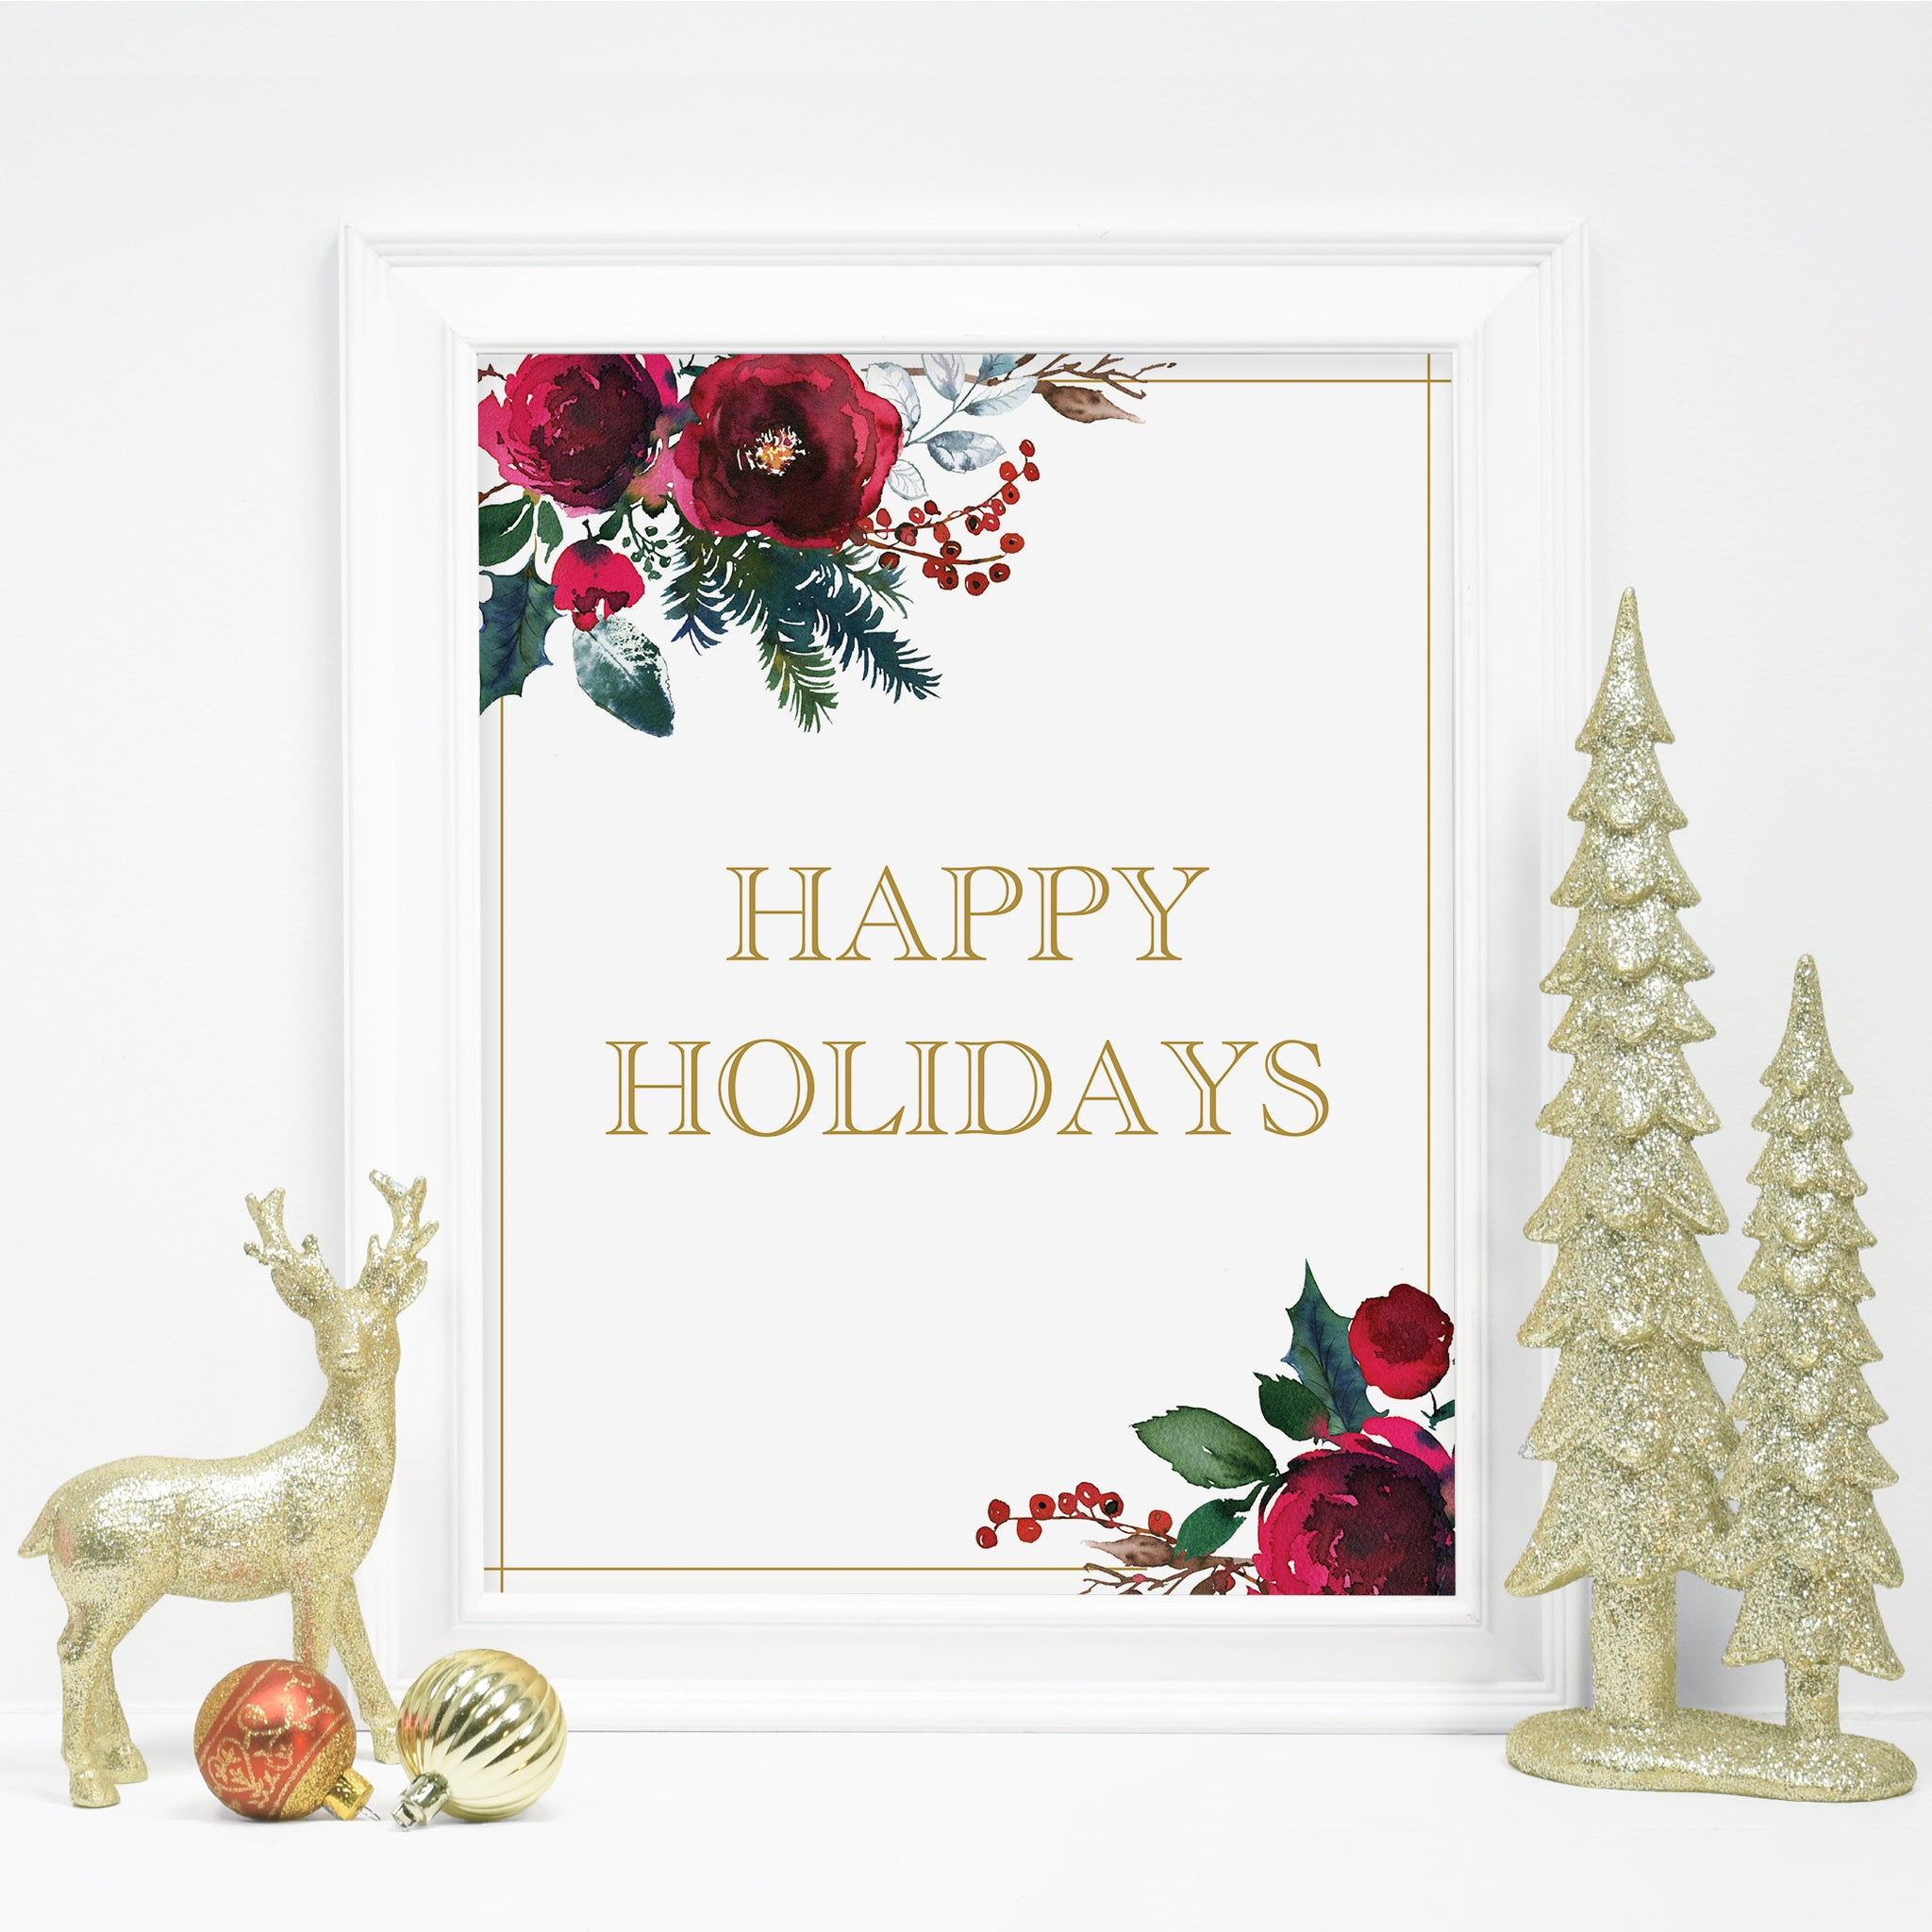 Happy Holidays Sign Printable, Holiday Decor, Holiday Party Printable Decorations, Holiday Party Decor, INSTANT DOWNLOAD - CG100 - @PlumPolkaDot